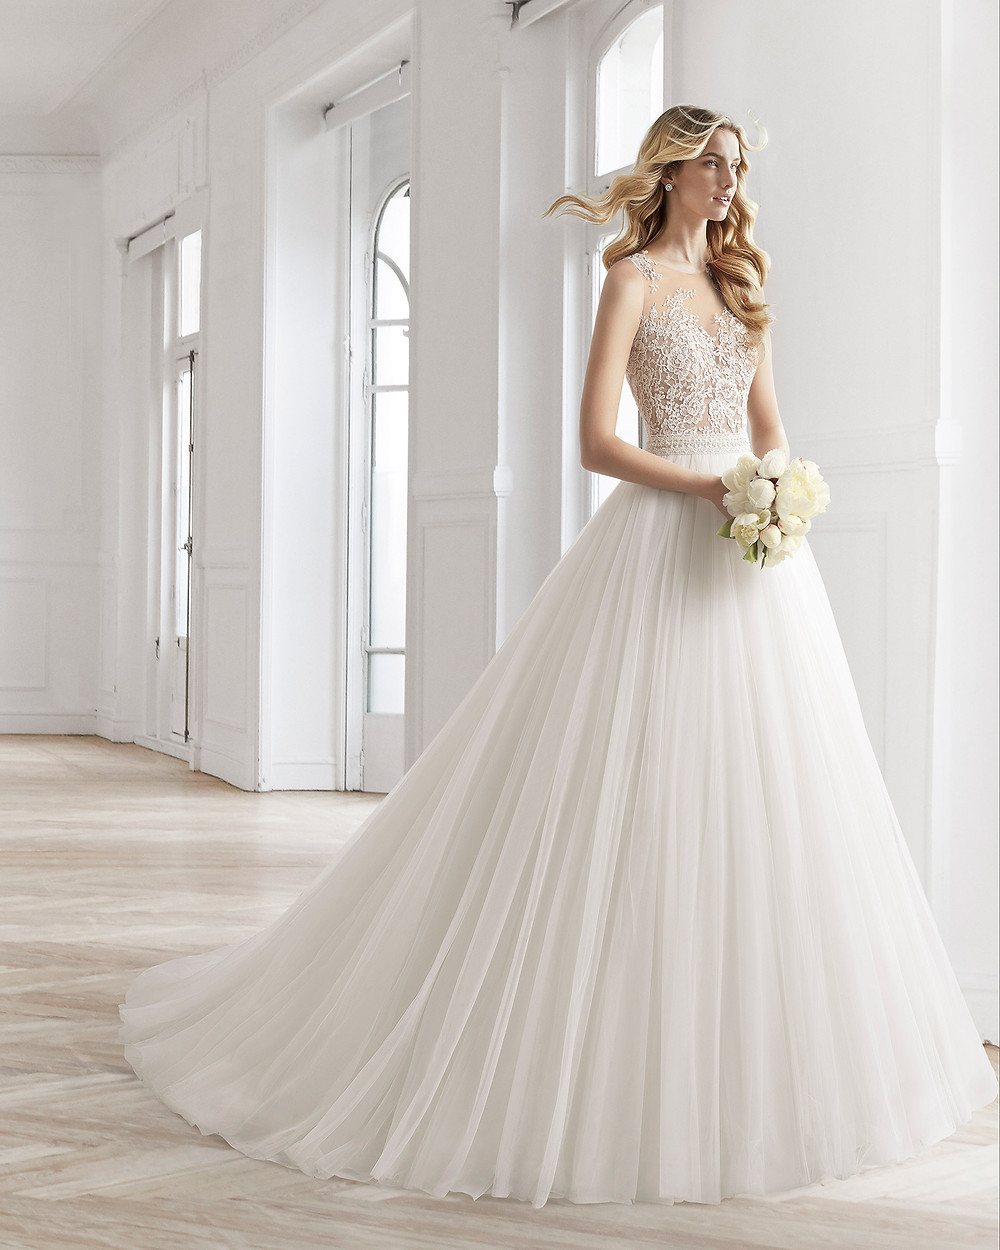 An Aire Barcelona 2020 lace and tulle ball gown wedding dress with an illusion neckline